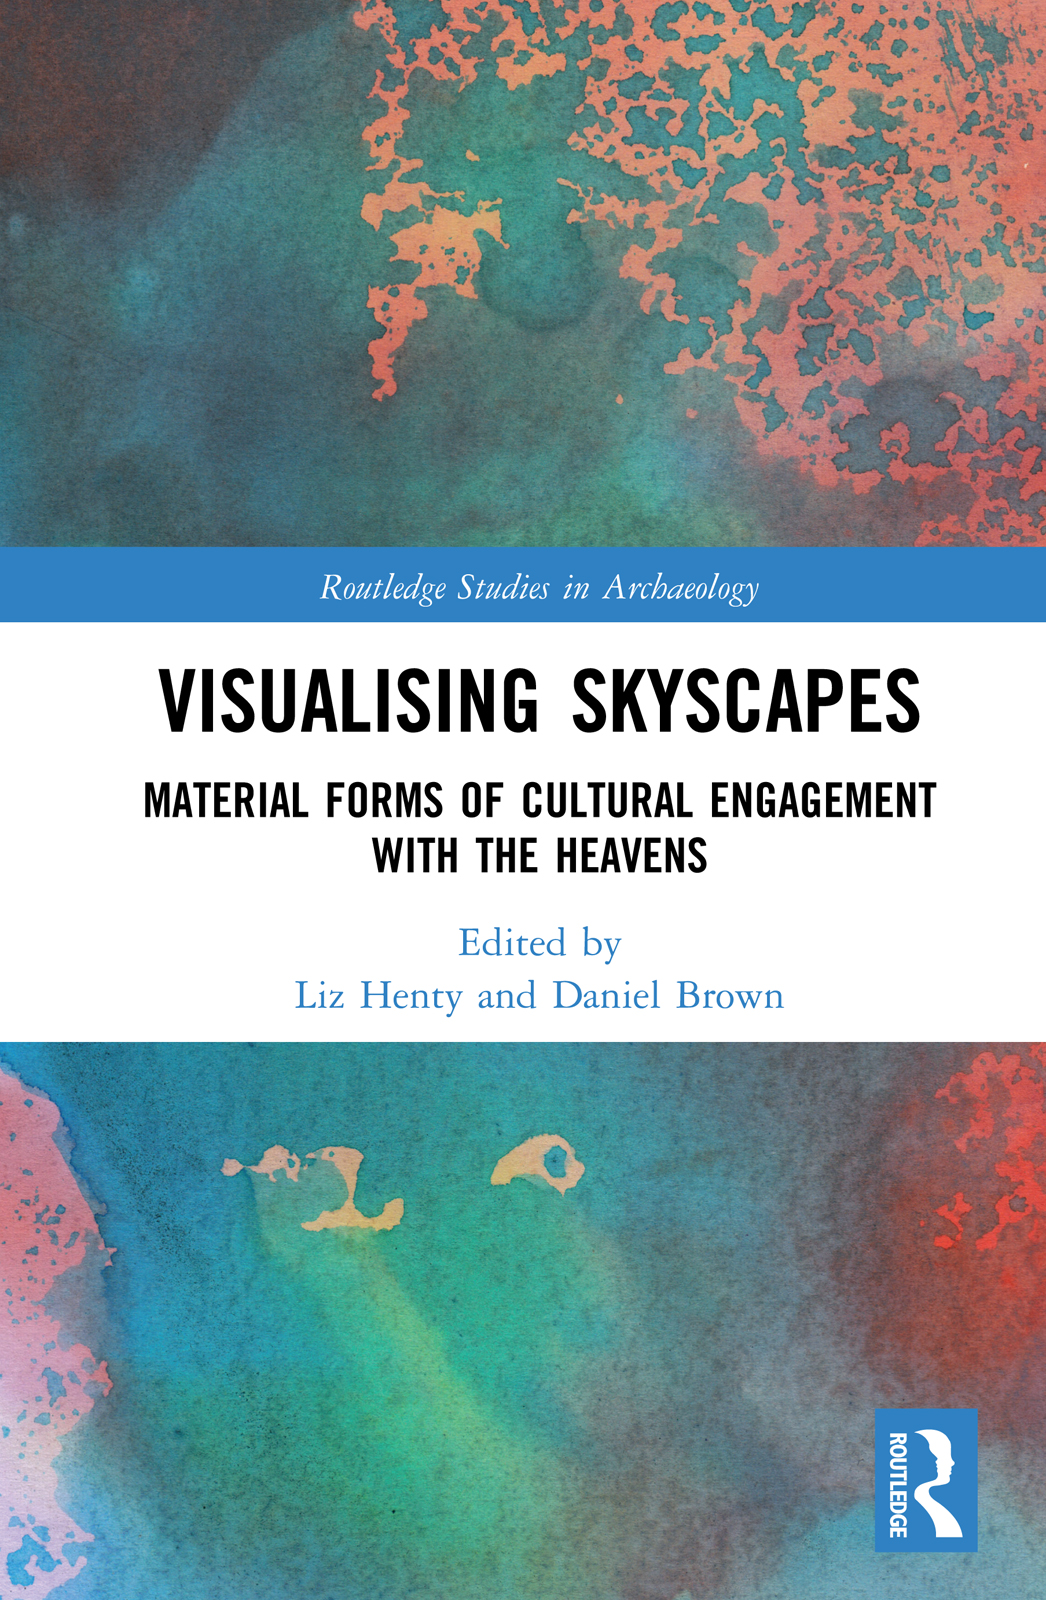 Visualising Skyscapes: Material Forms of Cultural Engagement with the Heavens book cover